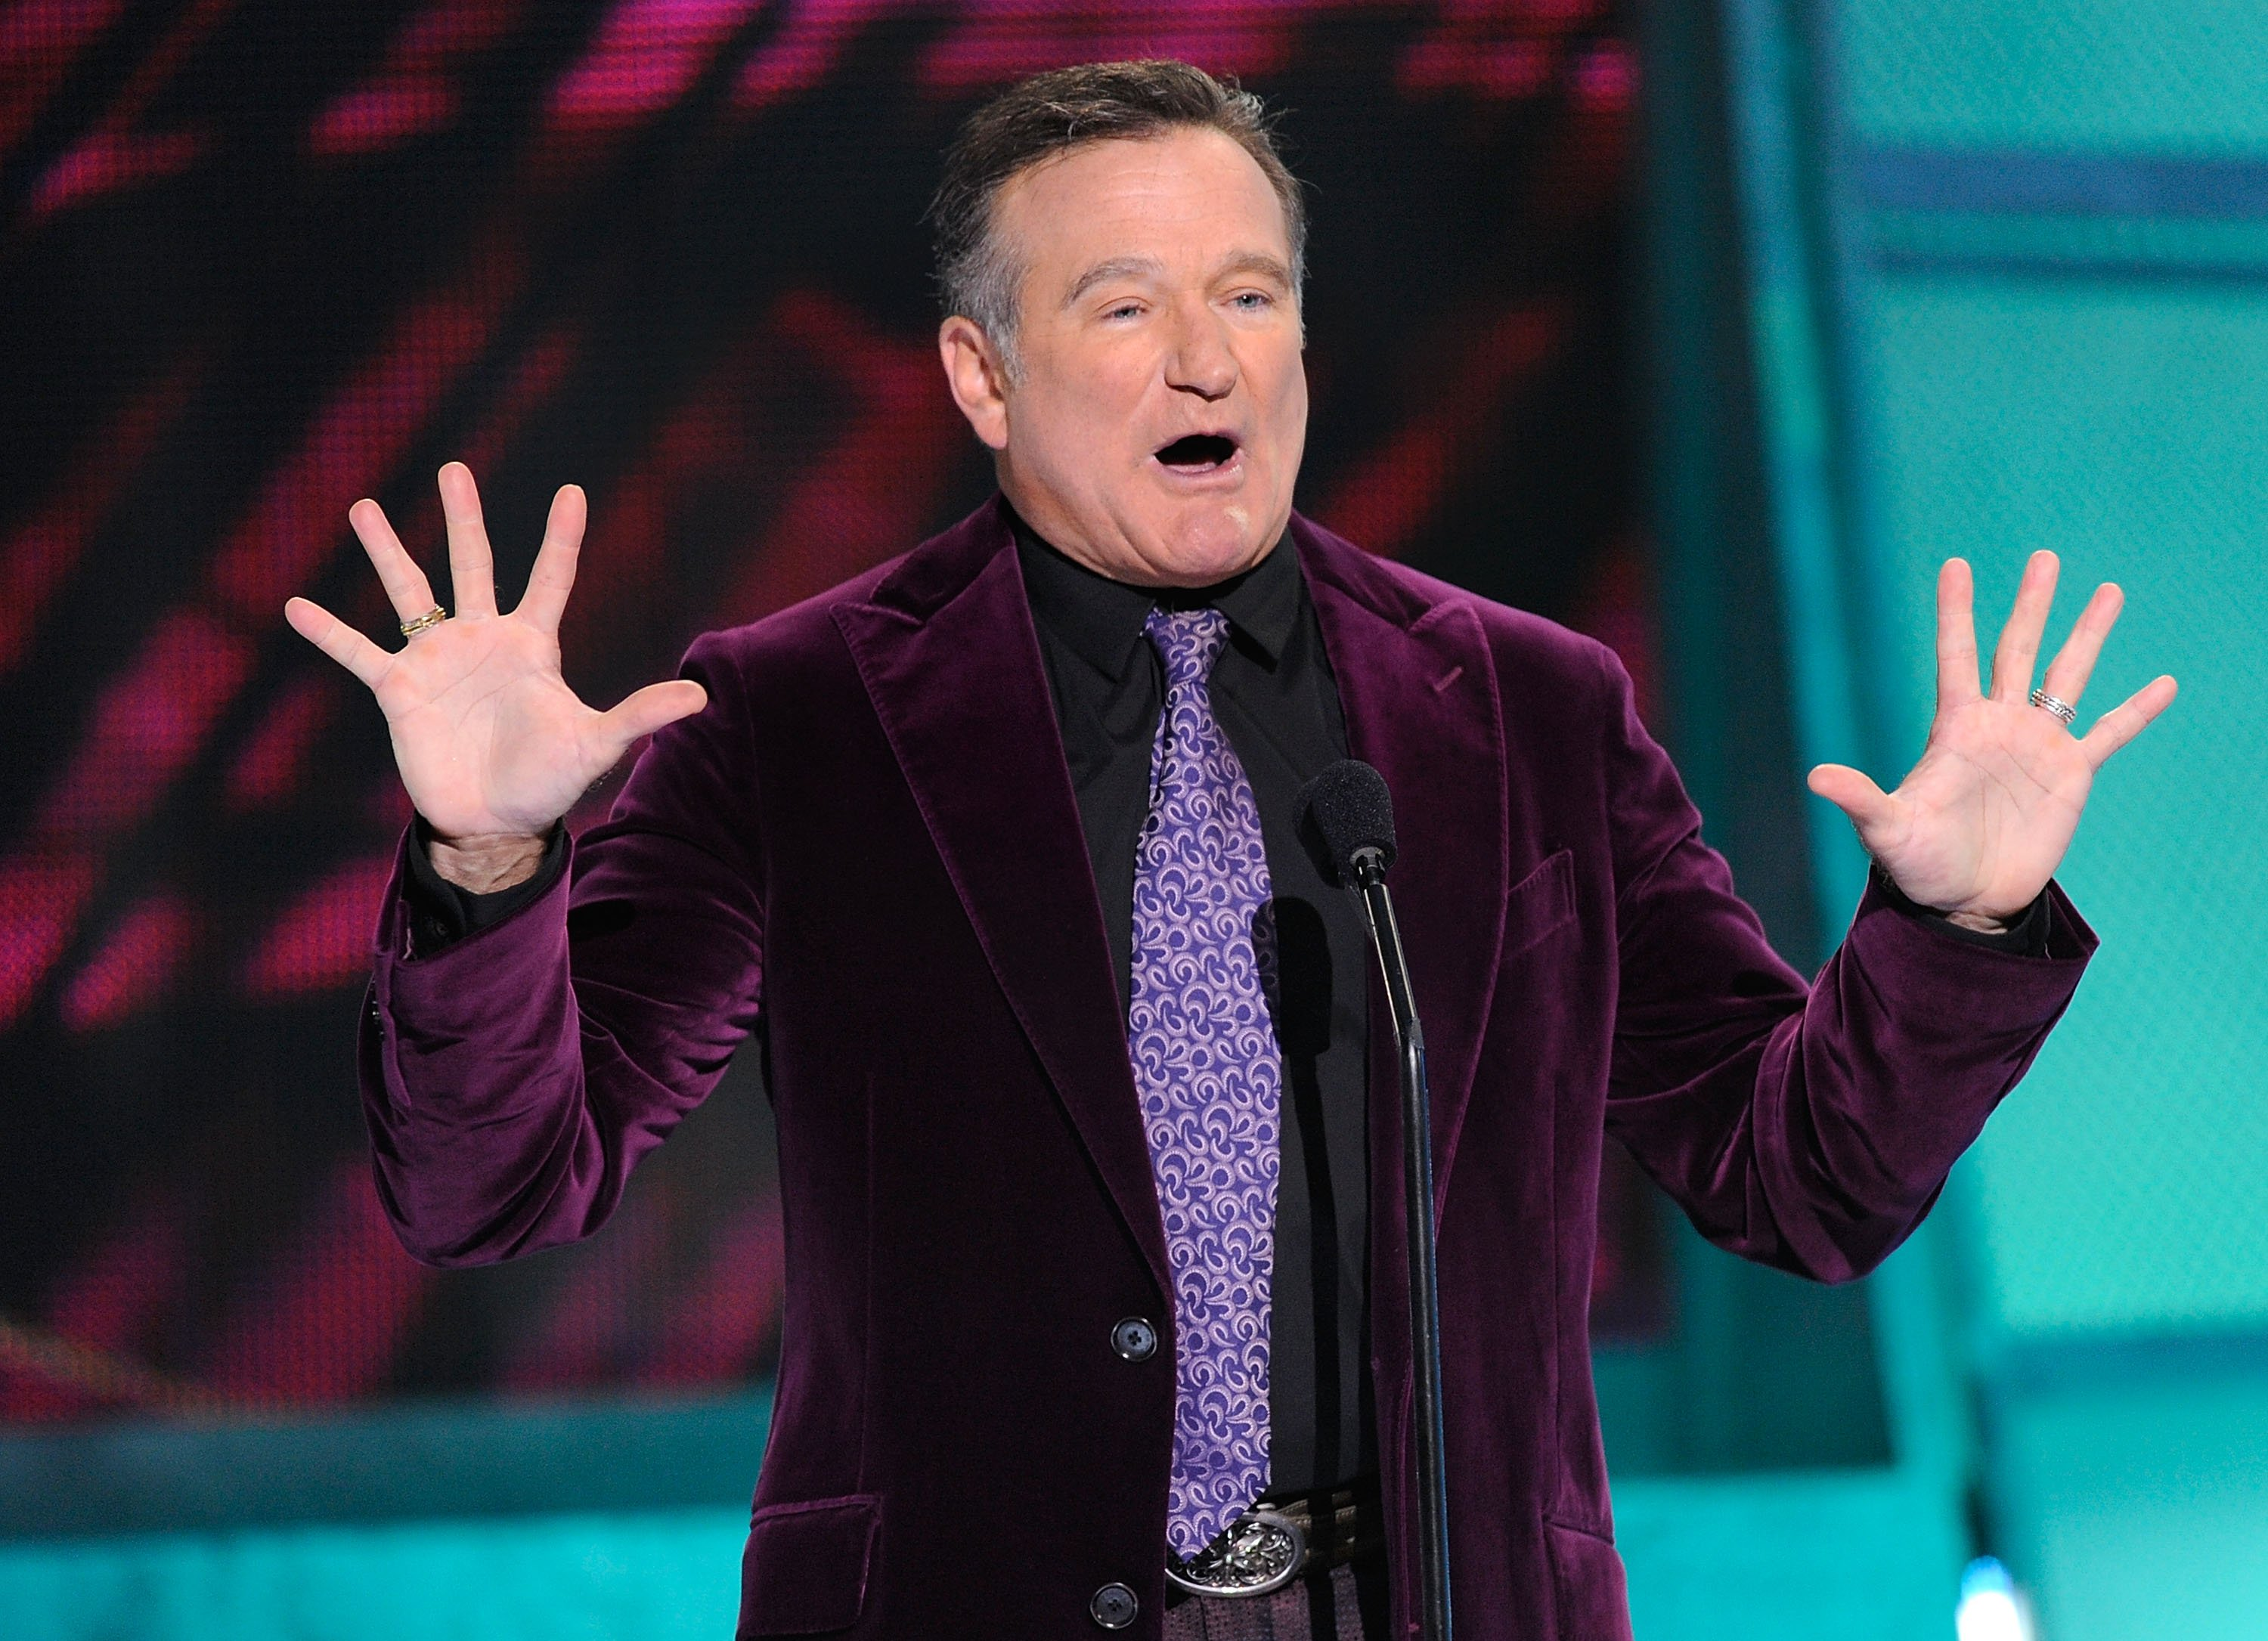 Robin Williams speaks at the People's Choice Awards in Los Angeles, California on January 7, 2009 | Photo: Getty images